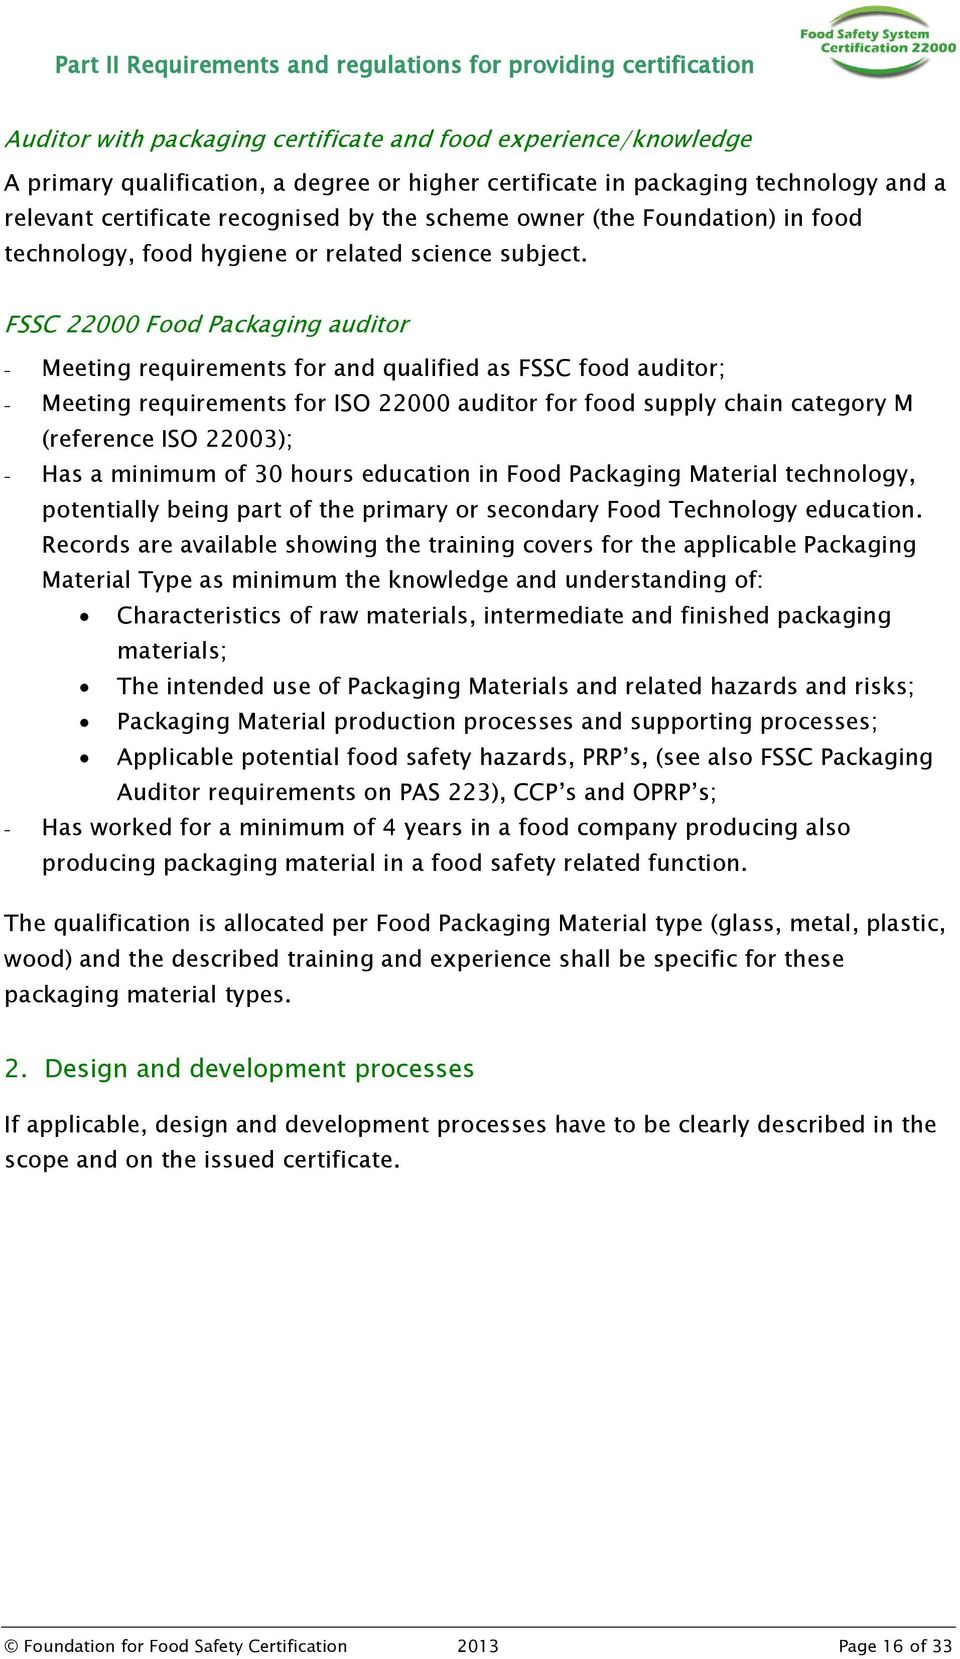 FSSC 22000 Food Packaging auditor - Meeting requirements for and qualified as FSSC food auditor; - Meeting requirements for ISO 22000 auditor for food supply chain category M (reference ISO 22003); -